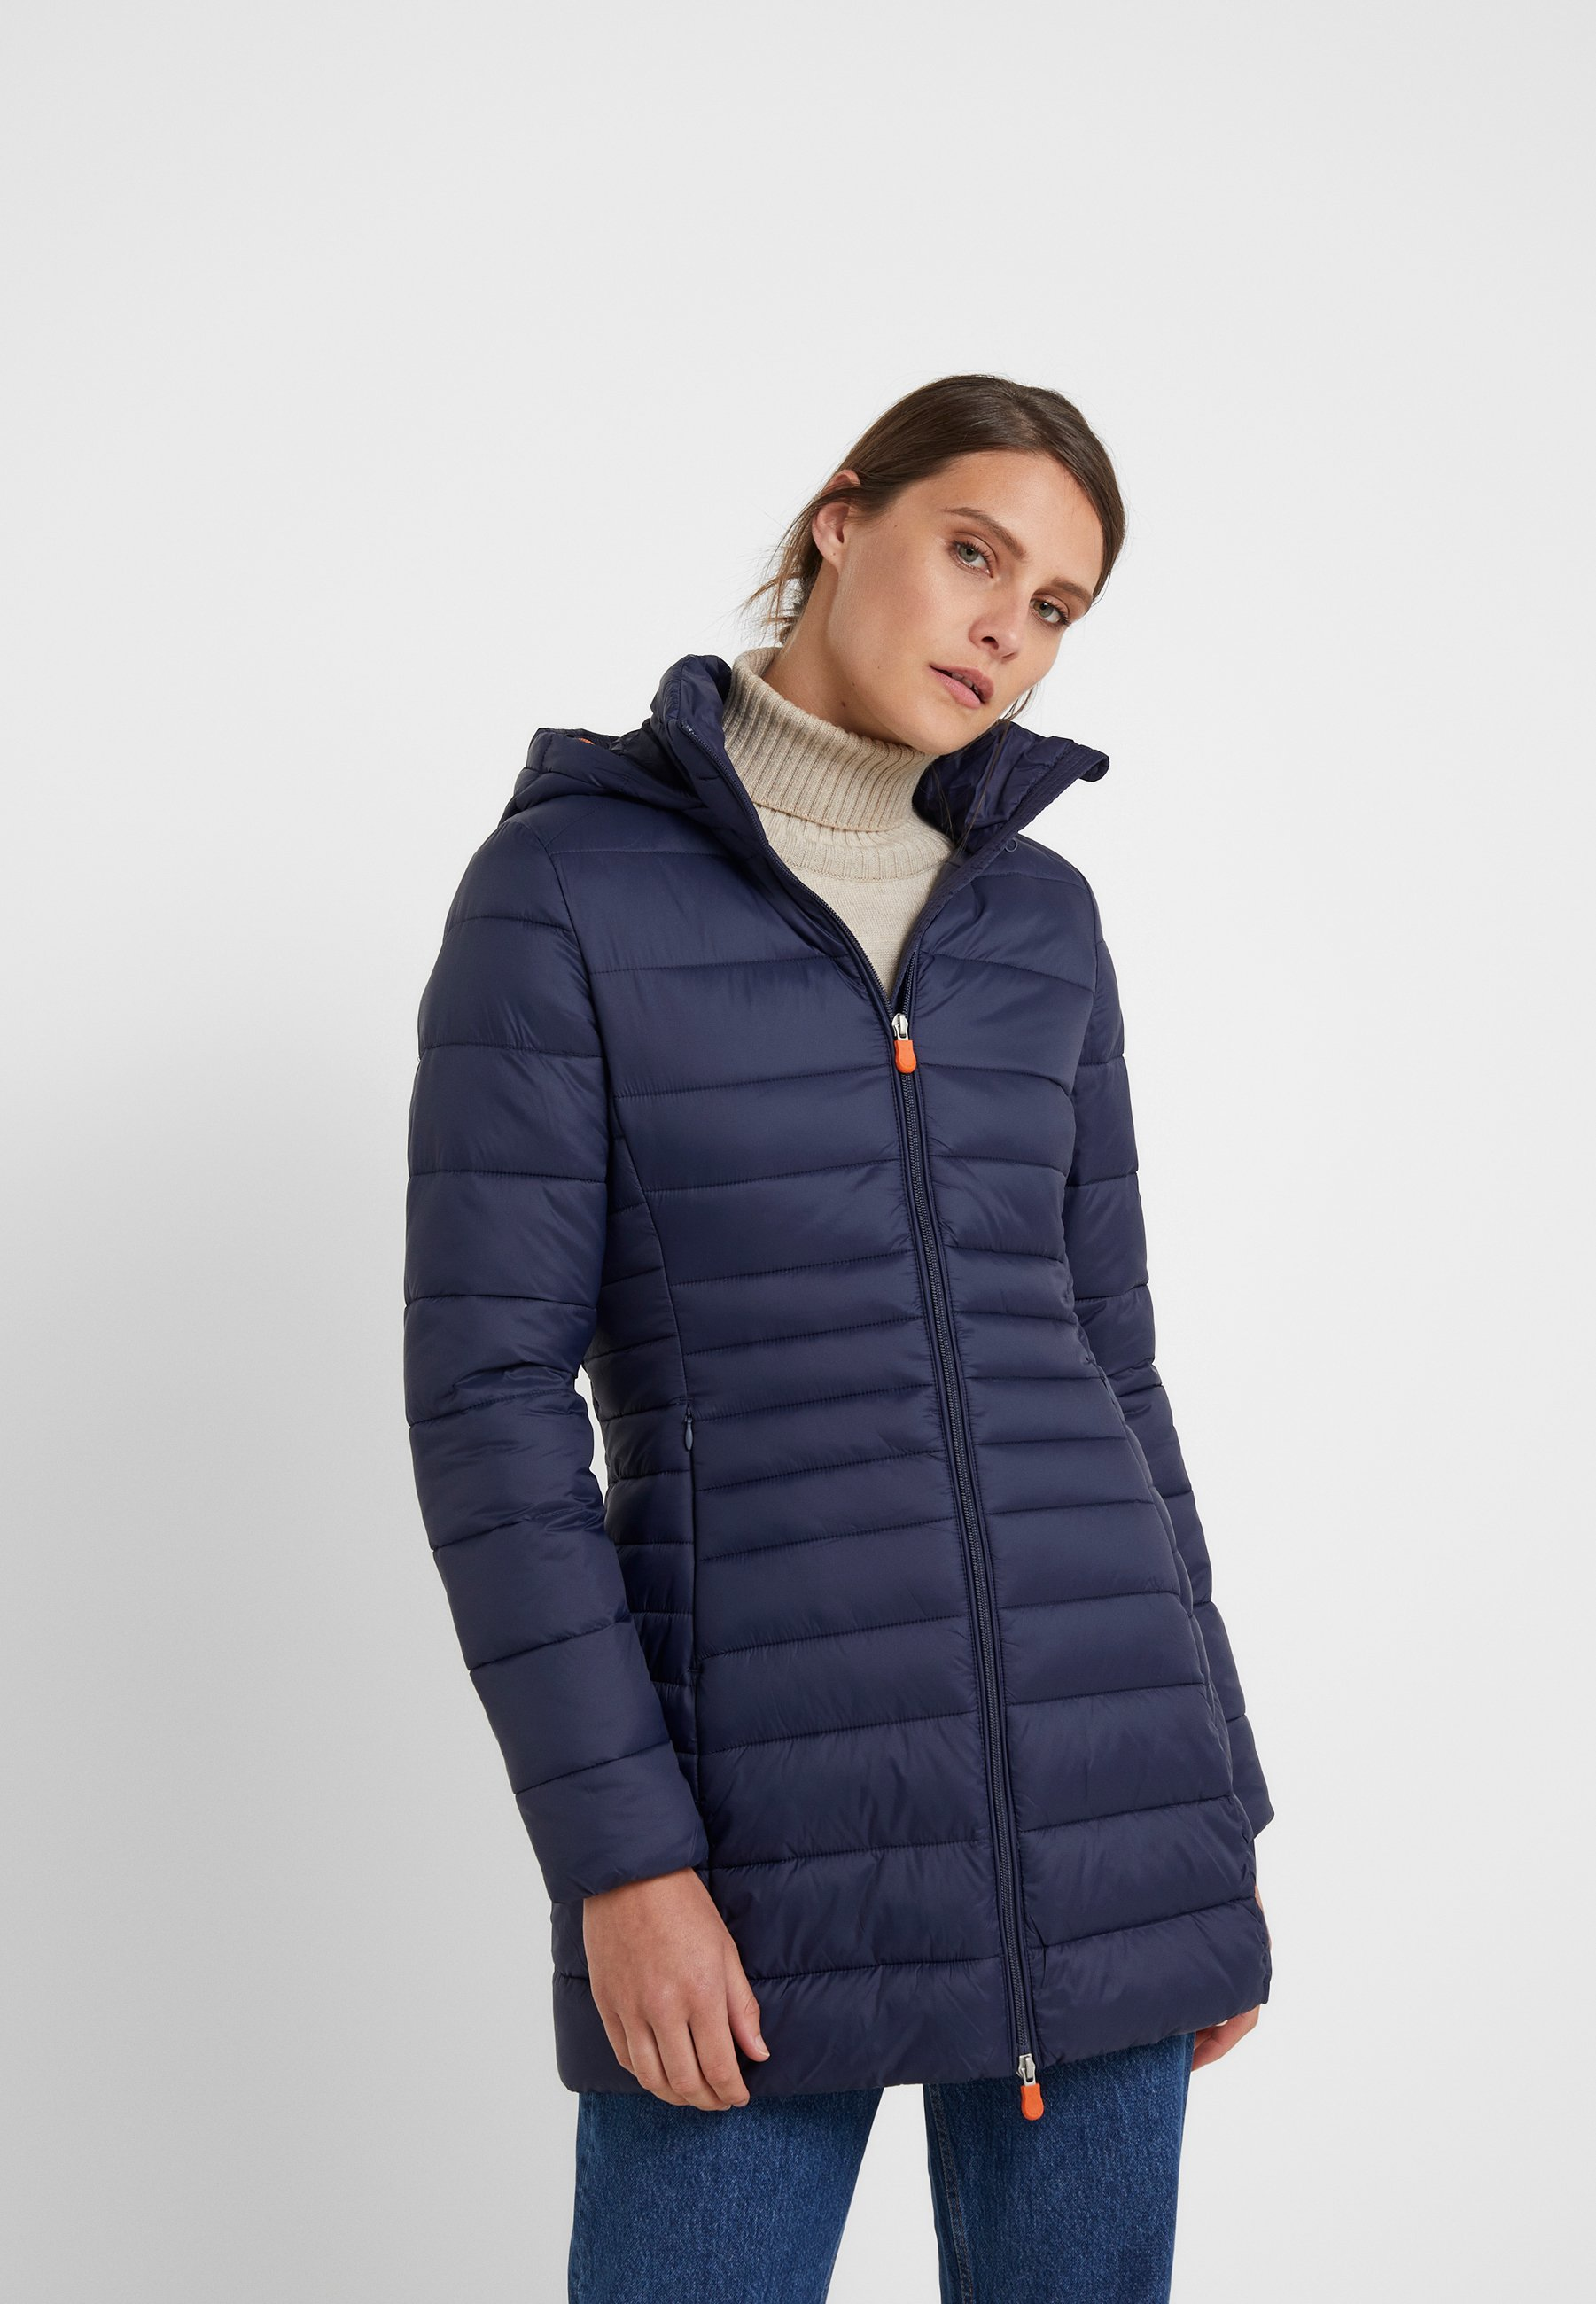 Black Duck GigaVeste Save D'hiver Navy The 8NOXnwk0P